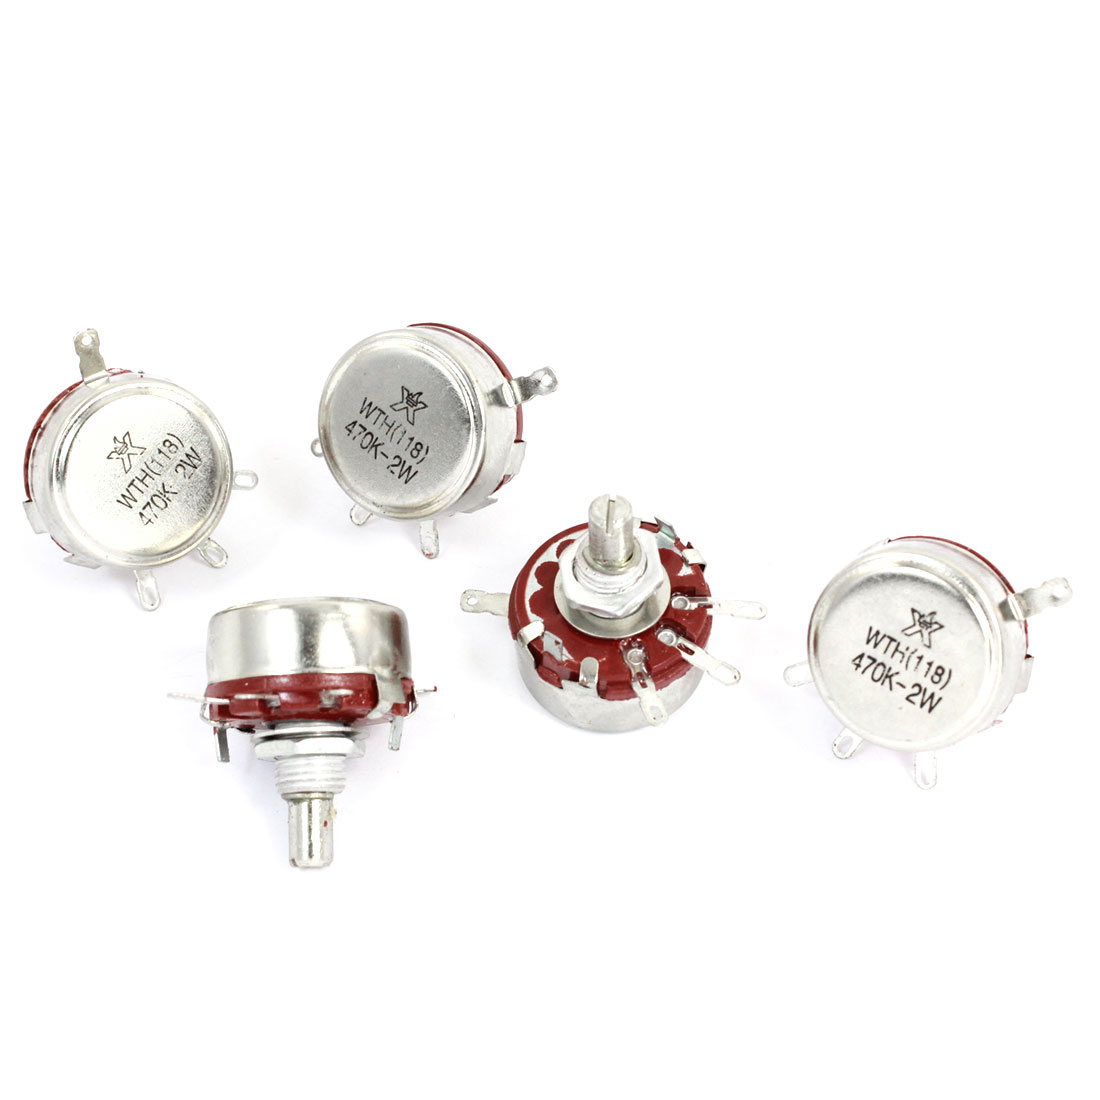 WTH118 470K ohm 2W 6mm Round Shaft 4 Pins Carbon Rotary Potentiometer 5pcs